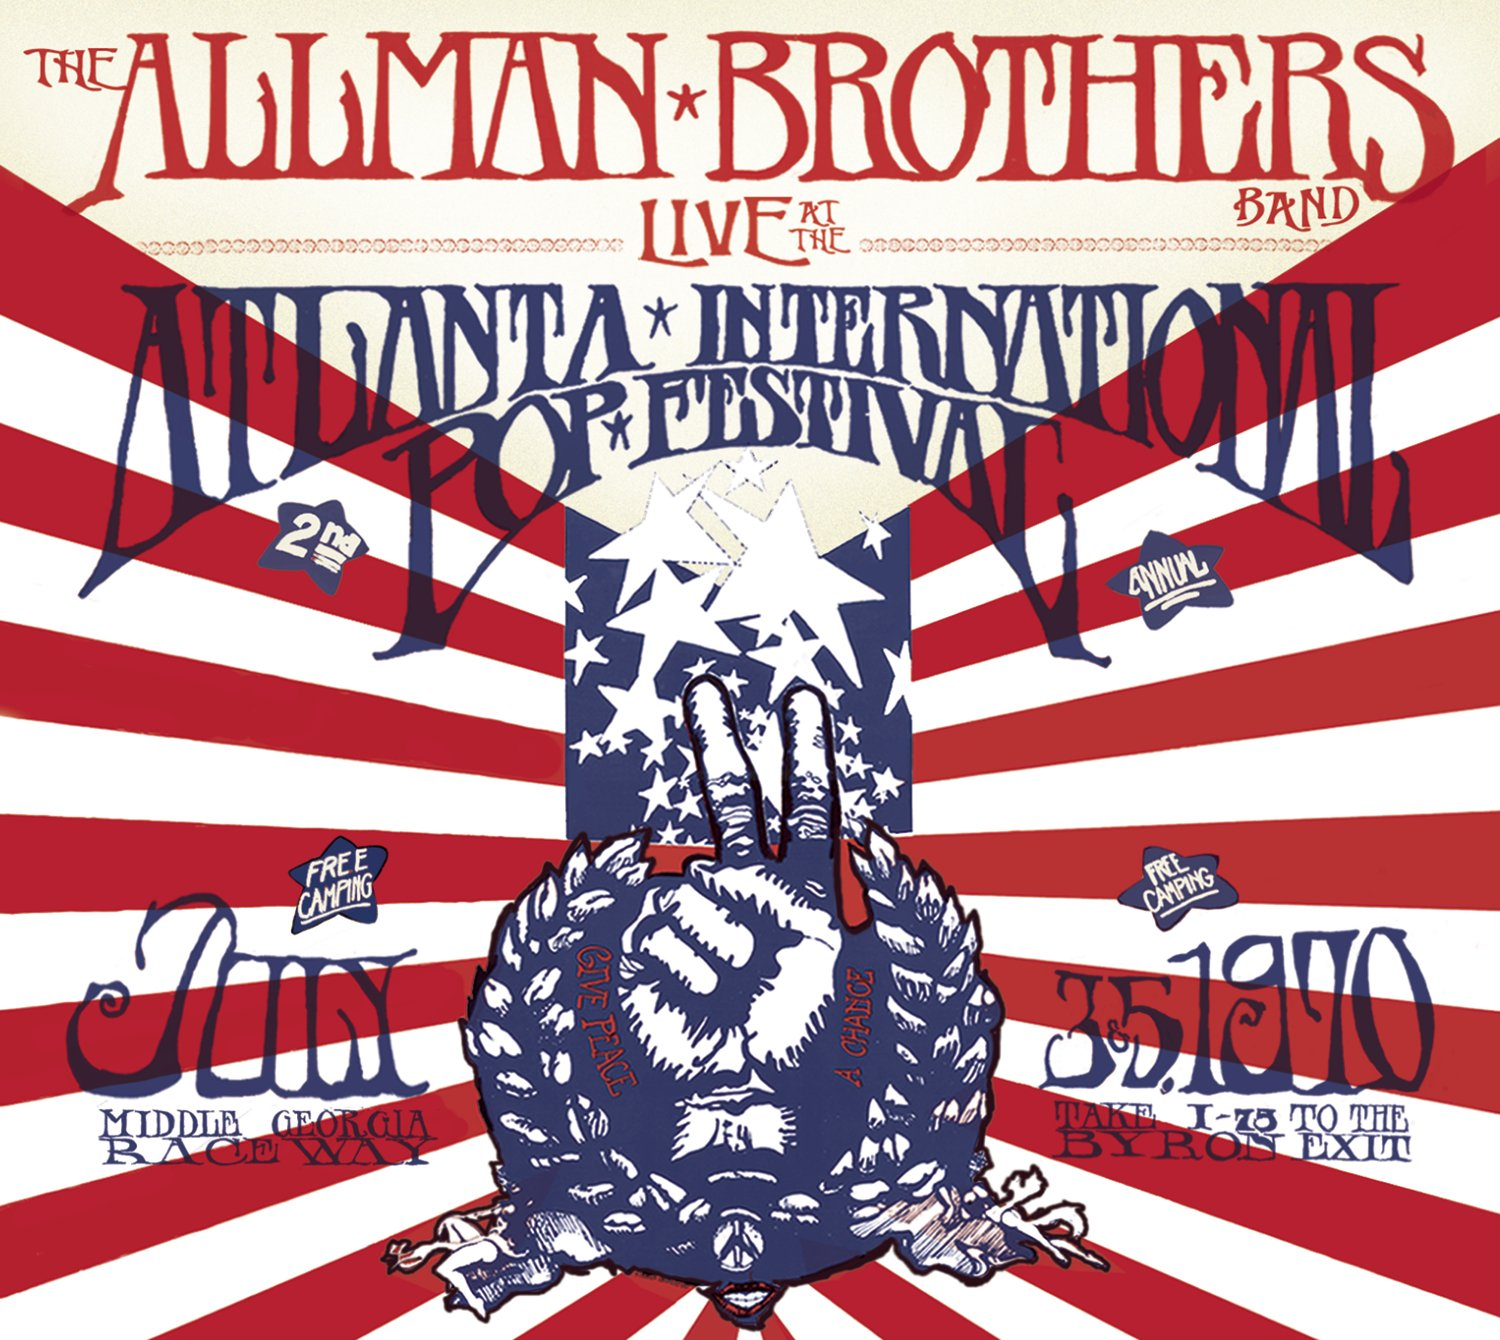 The Allman Brothers Band Live at the Atlanta International Pop Festival, July 3 & 5 1970 by Epic Legacy